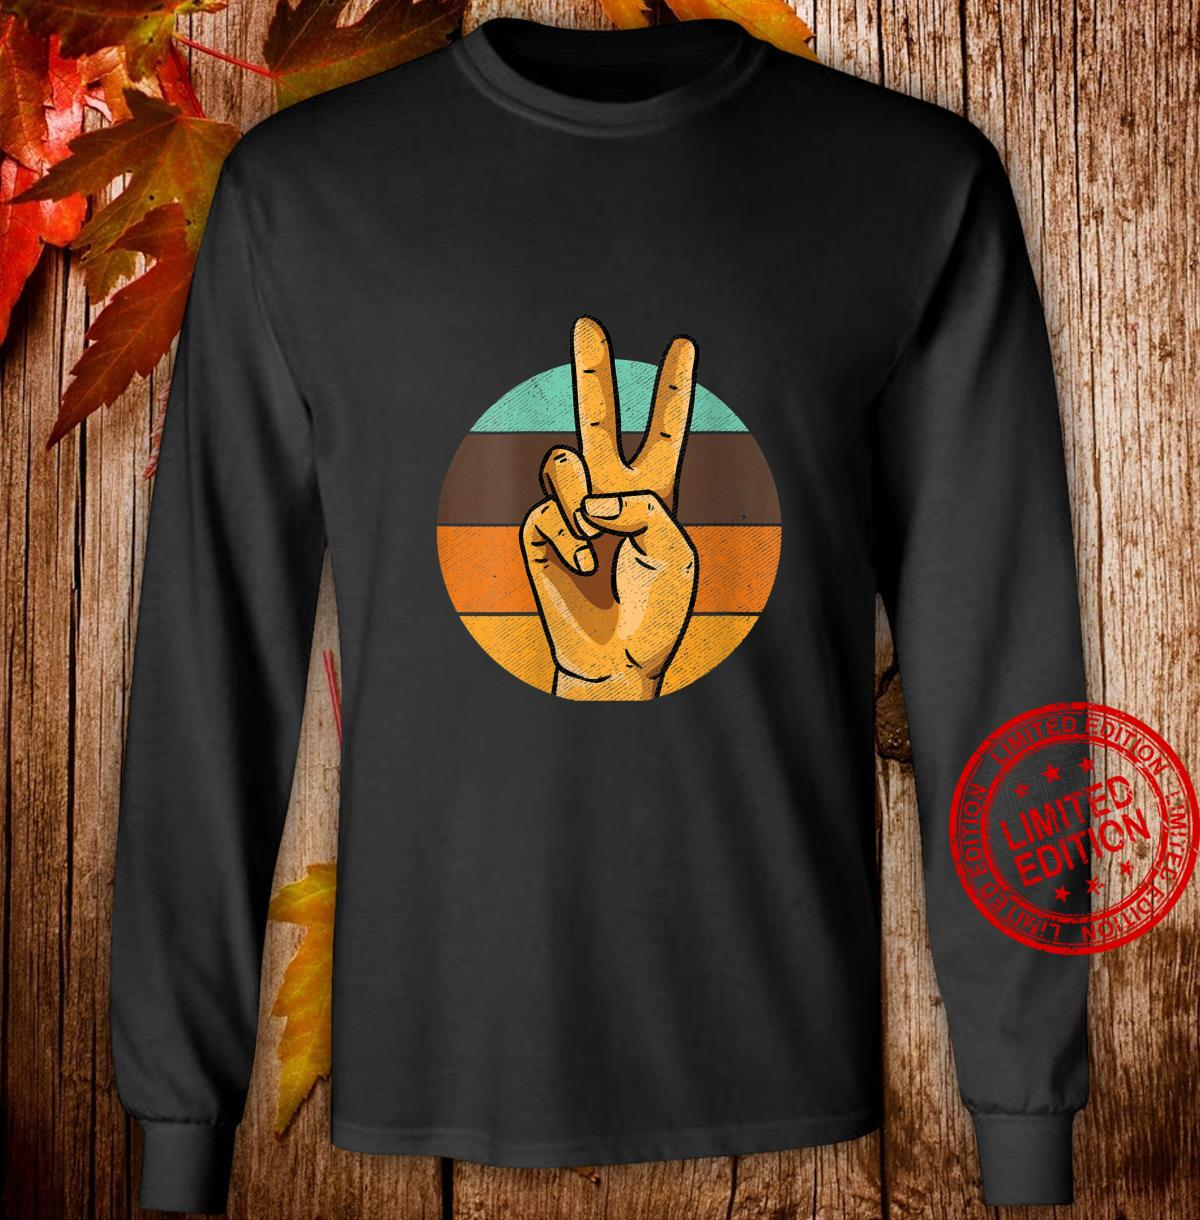 Womens Retro Peace Vintage Shirt 60's 70's Hippie Shirt long sleeved